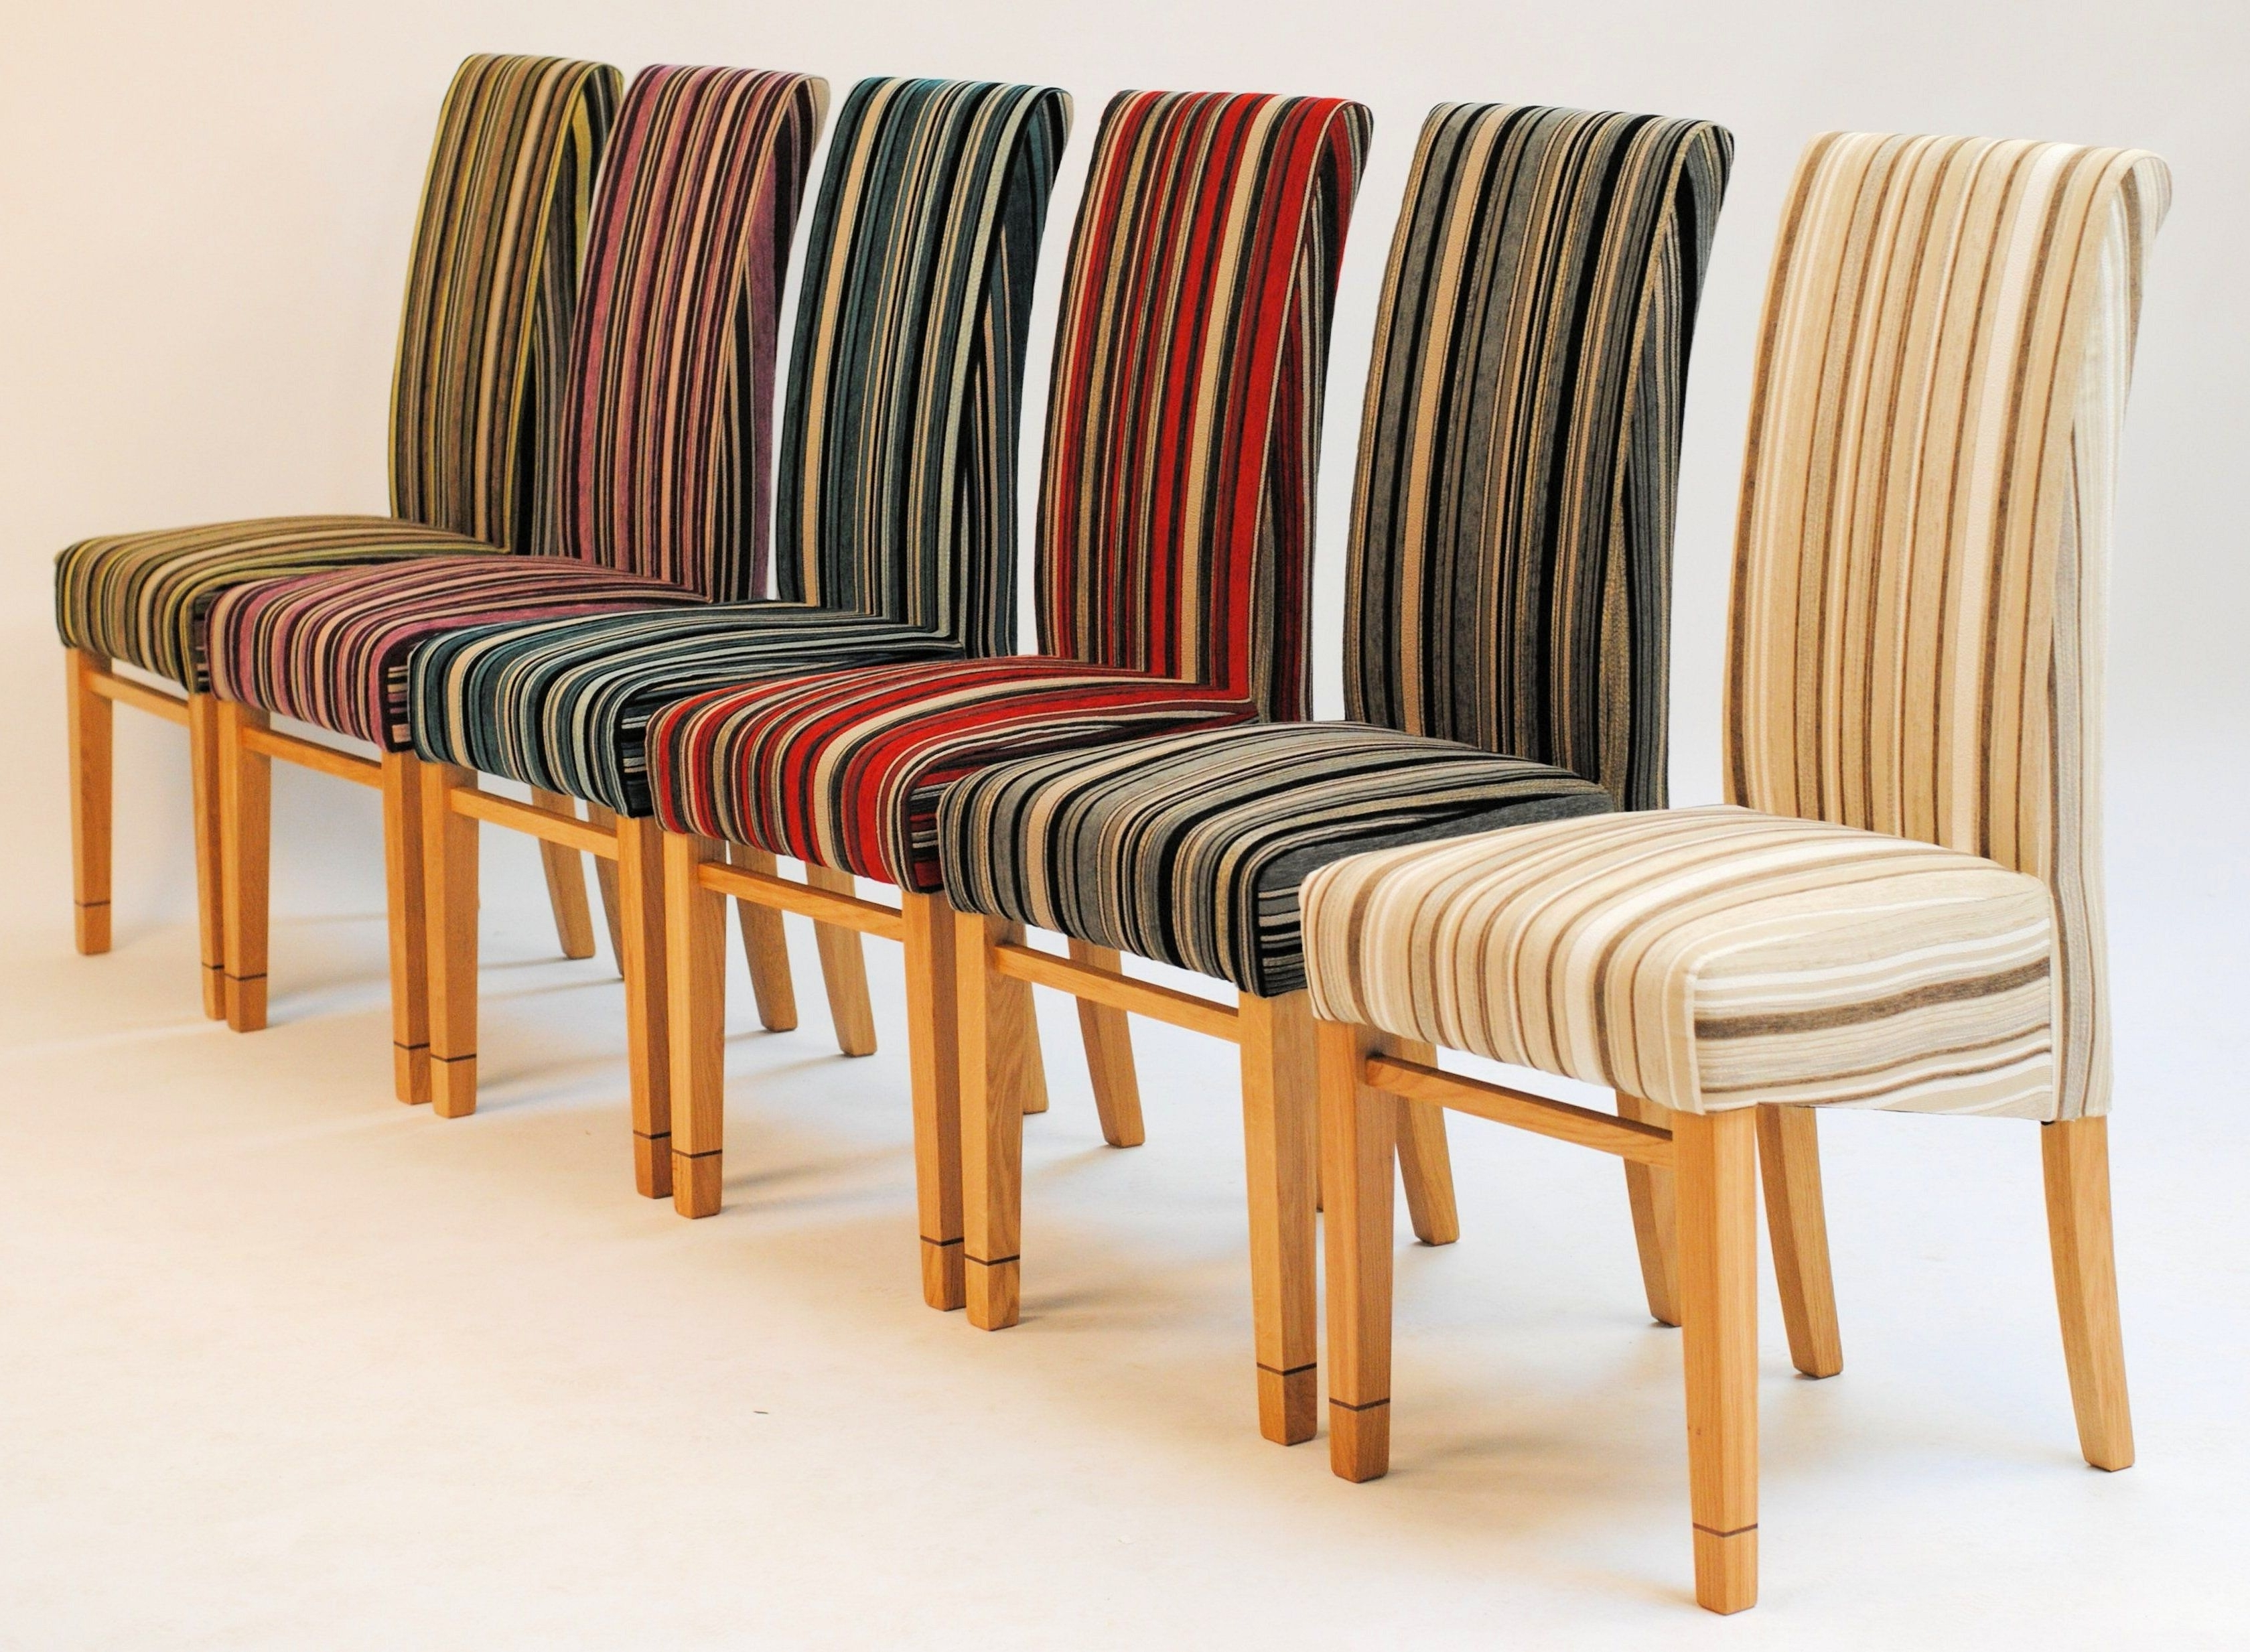 Most Recent A Pair Of Dining Chairs – Tanner Furniture Designs Throughout Oak Fabric Dining Chairs (View 20 of 25)